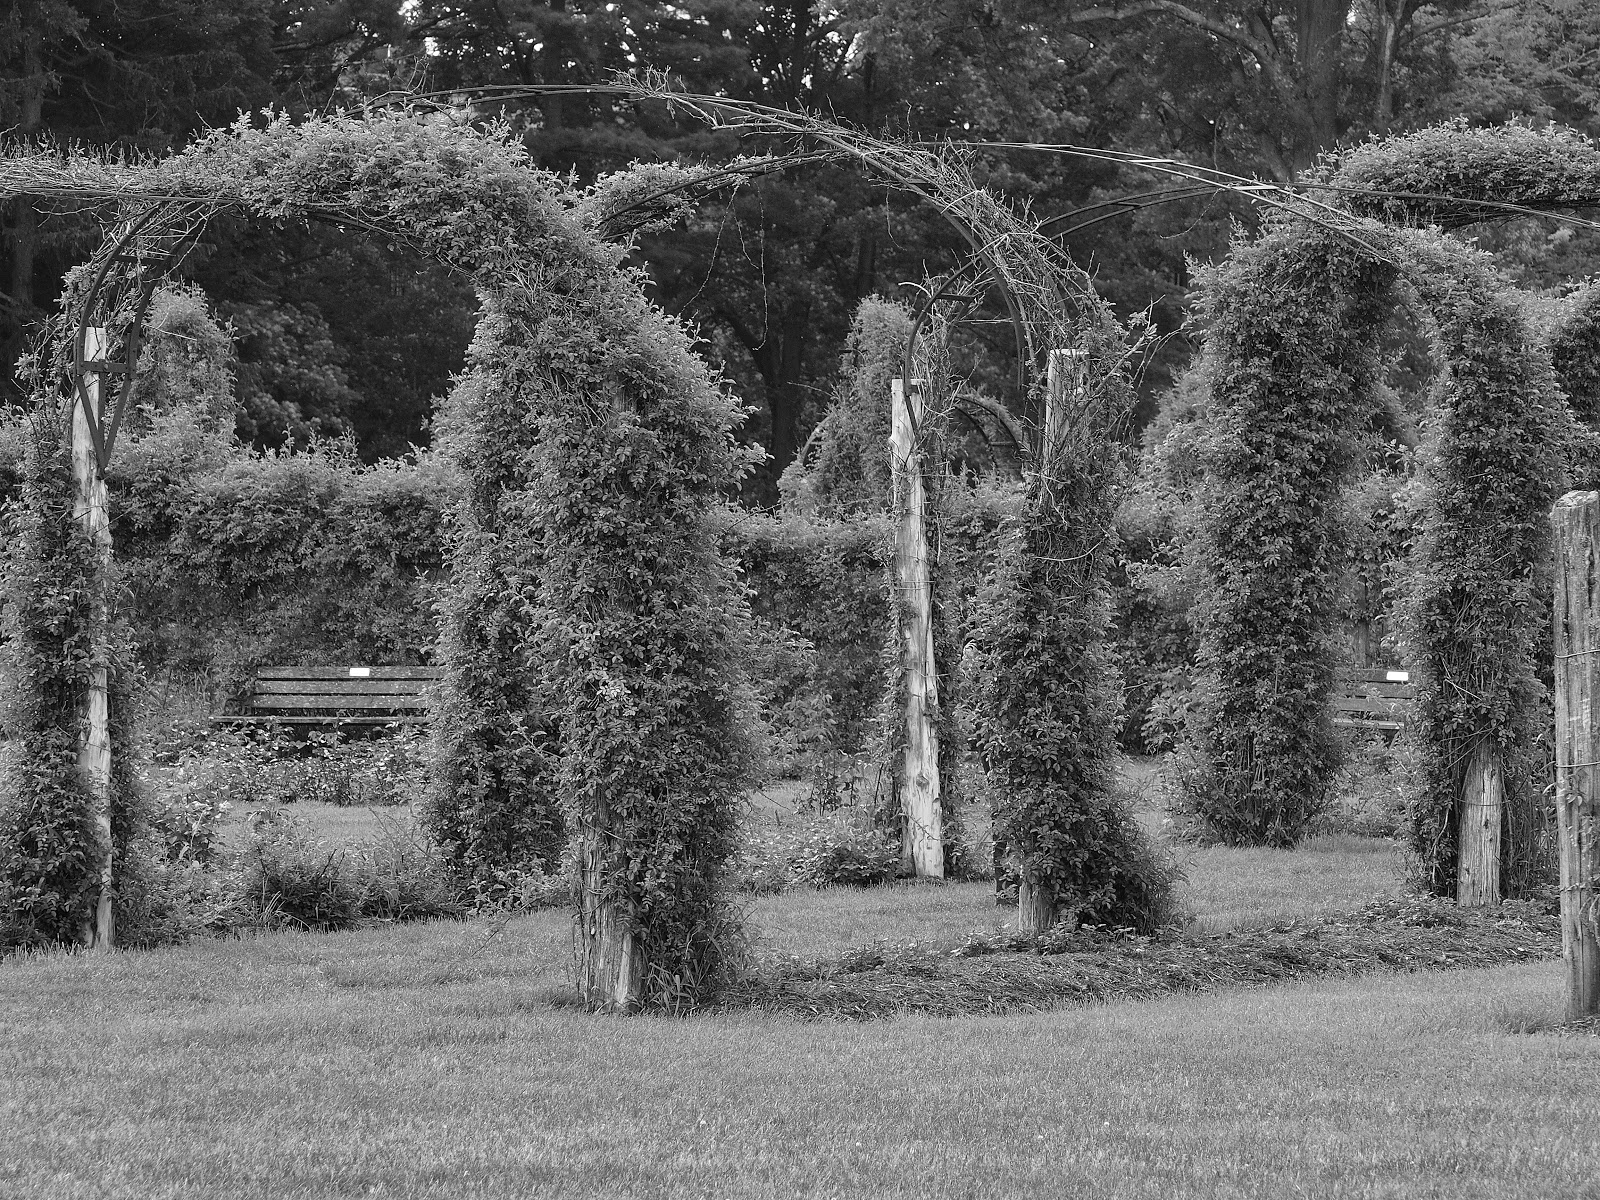 Rose Garden Arches, Elizabeth Park, Black & White, Hartford, CT 2014 #rosegarden